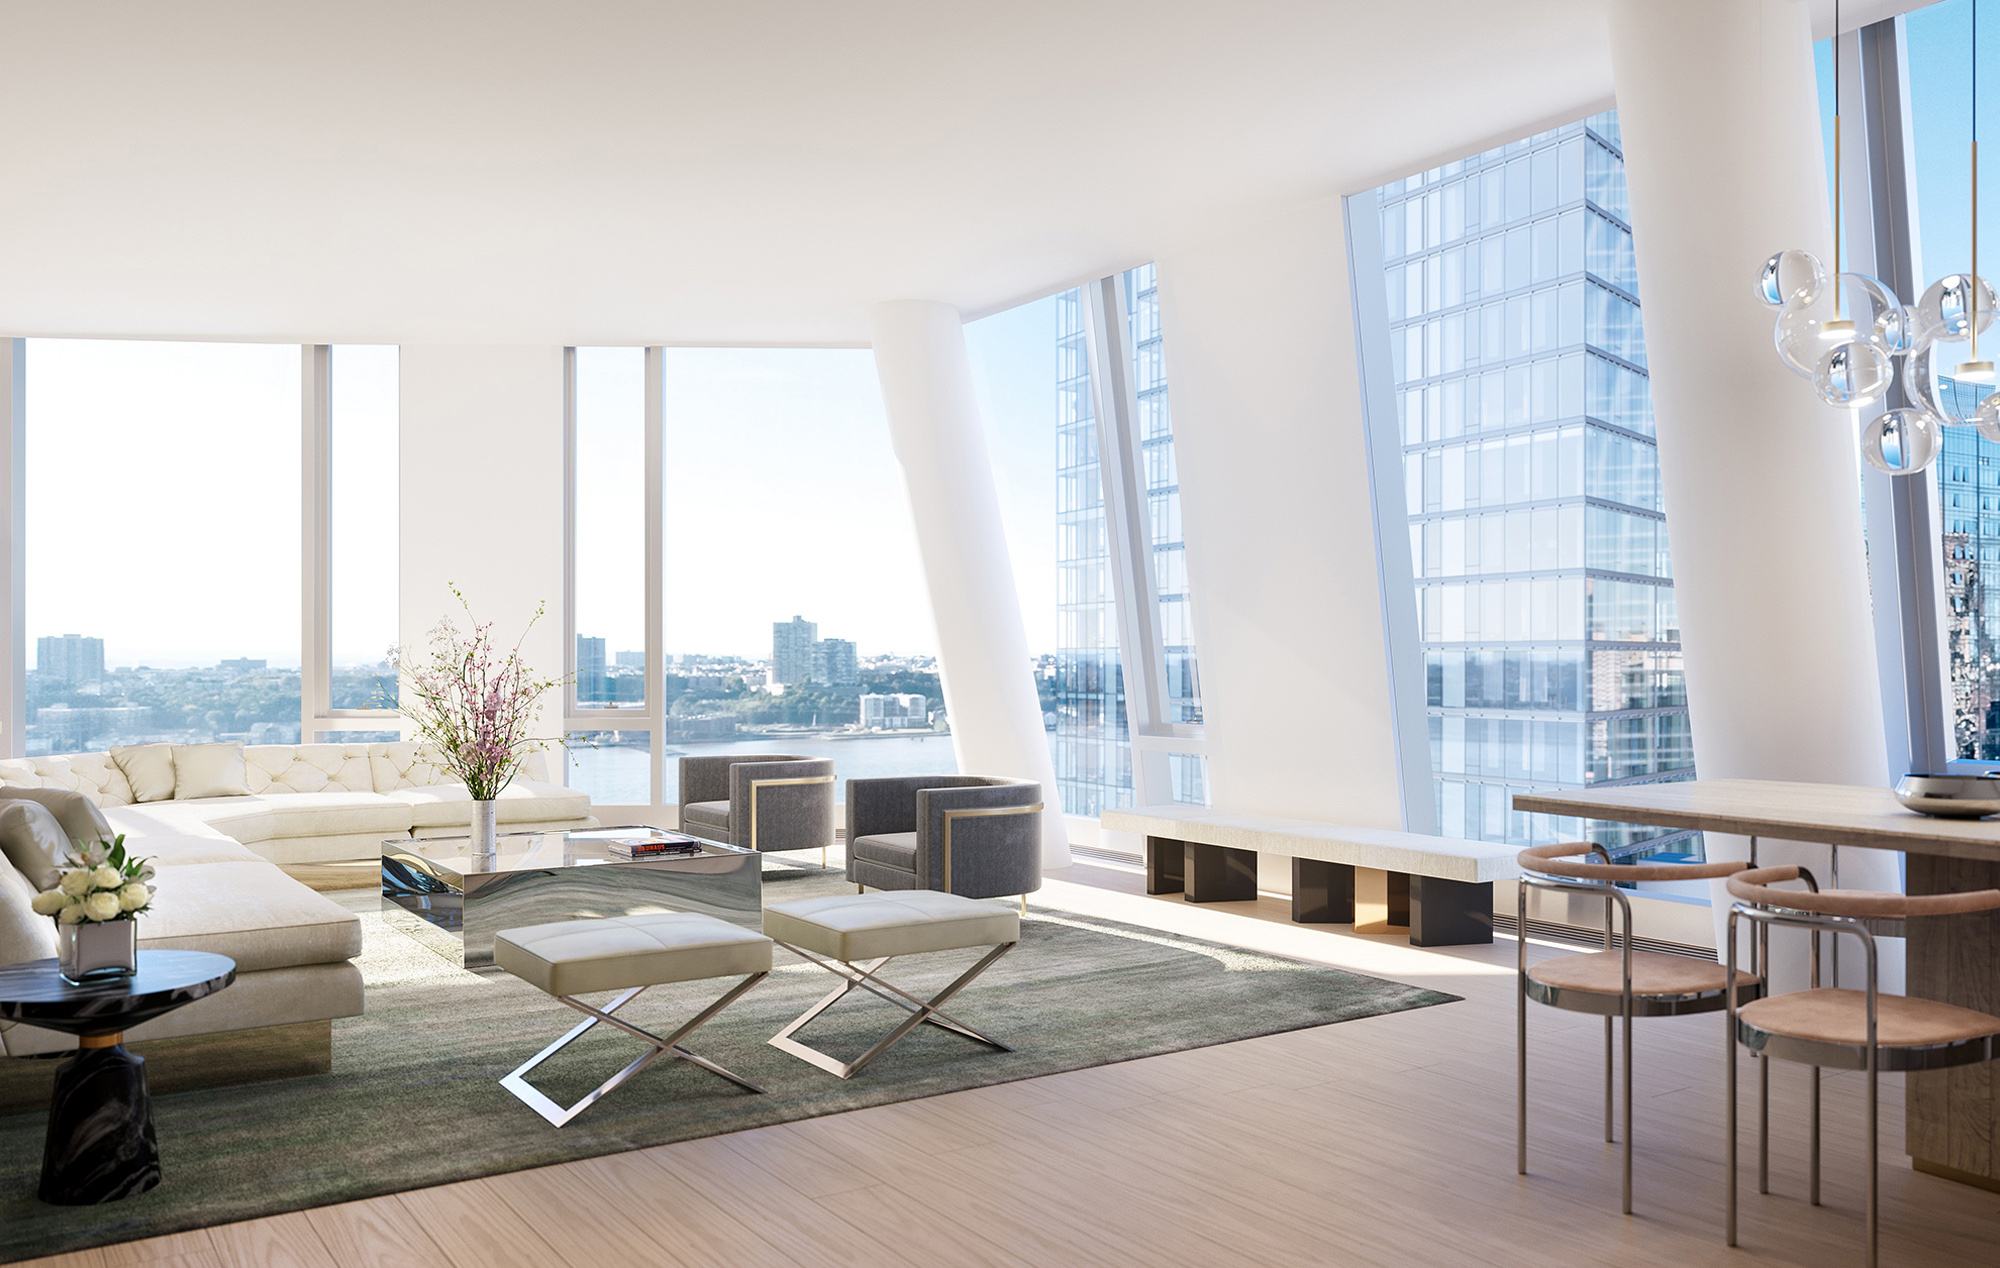 Condo Living Room with Views of New York and High Ceilings